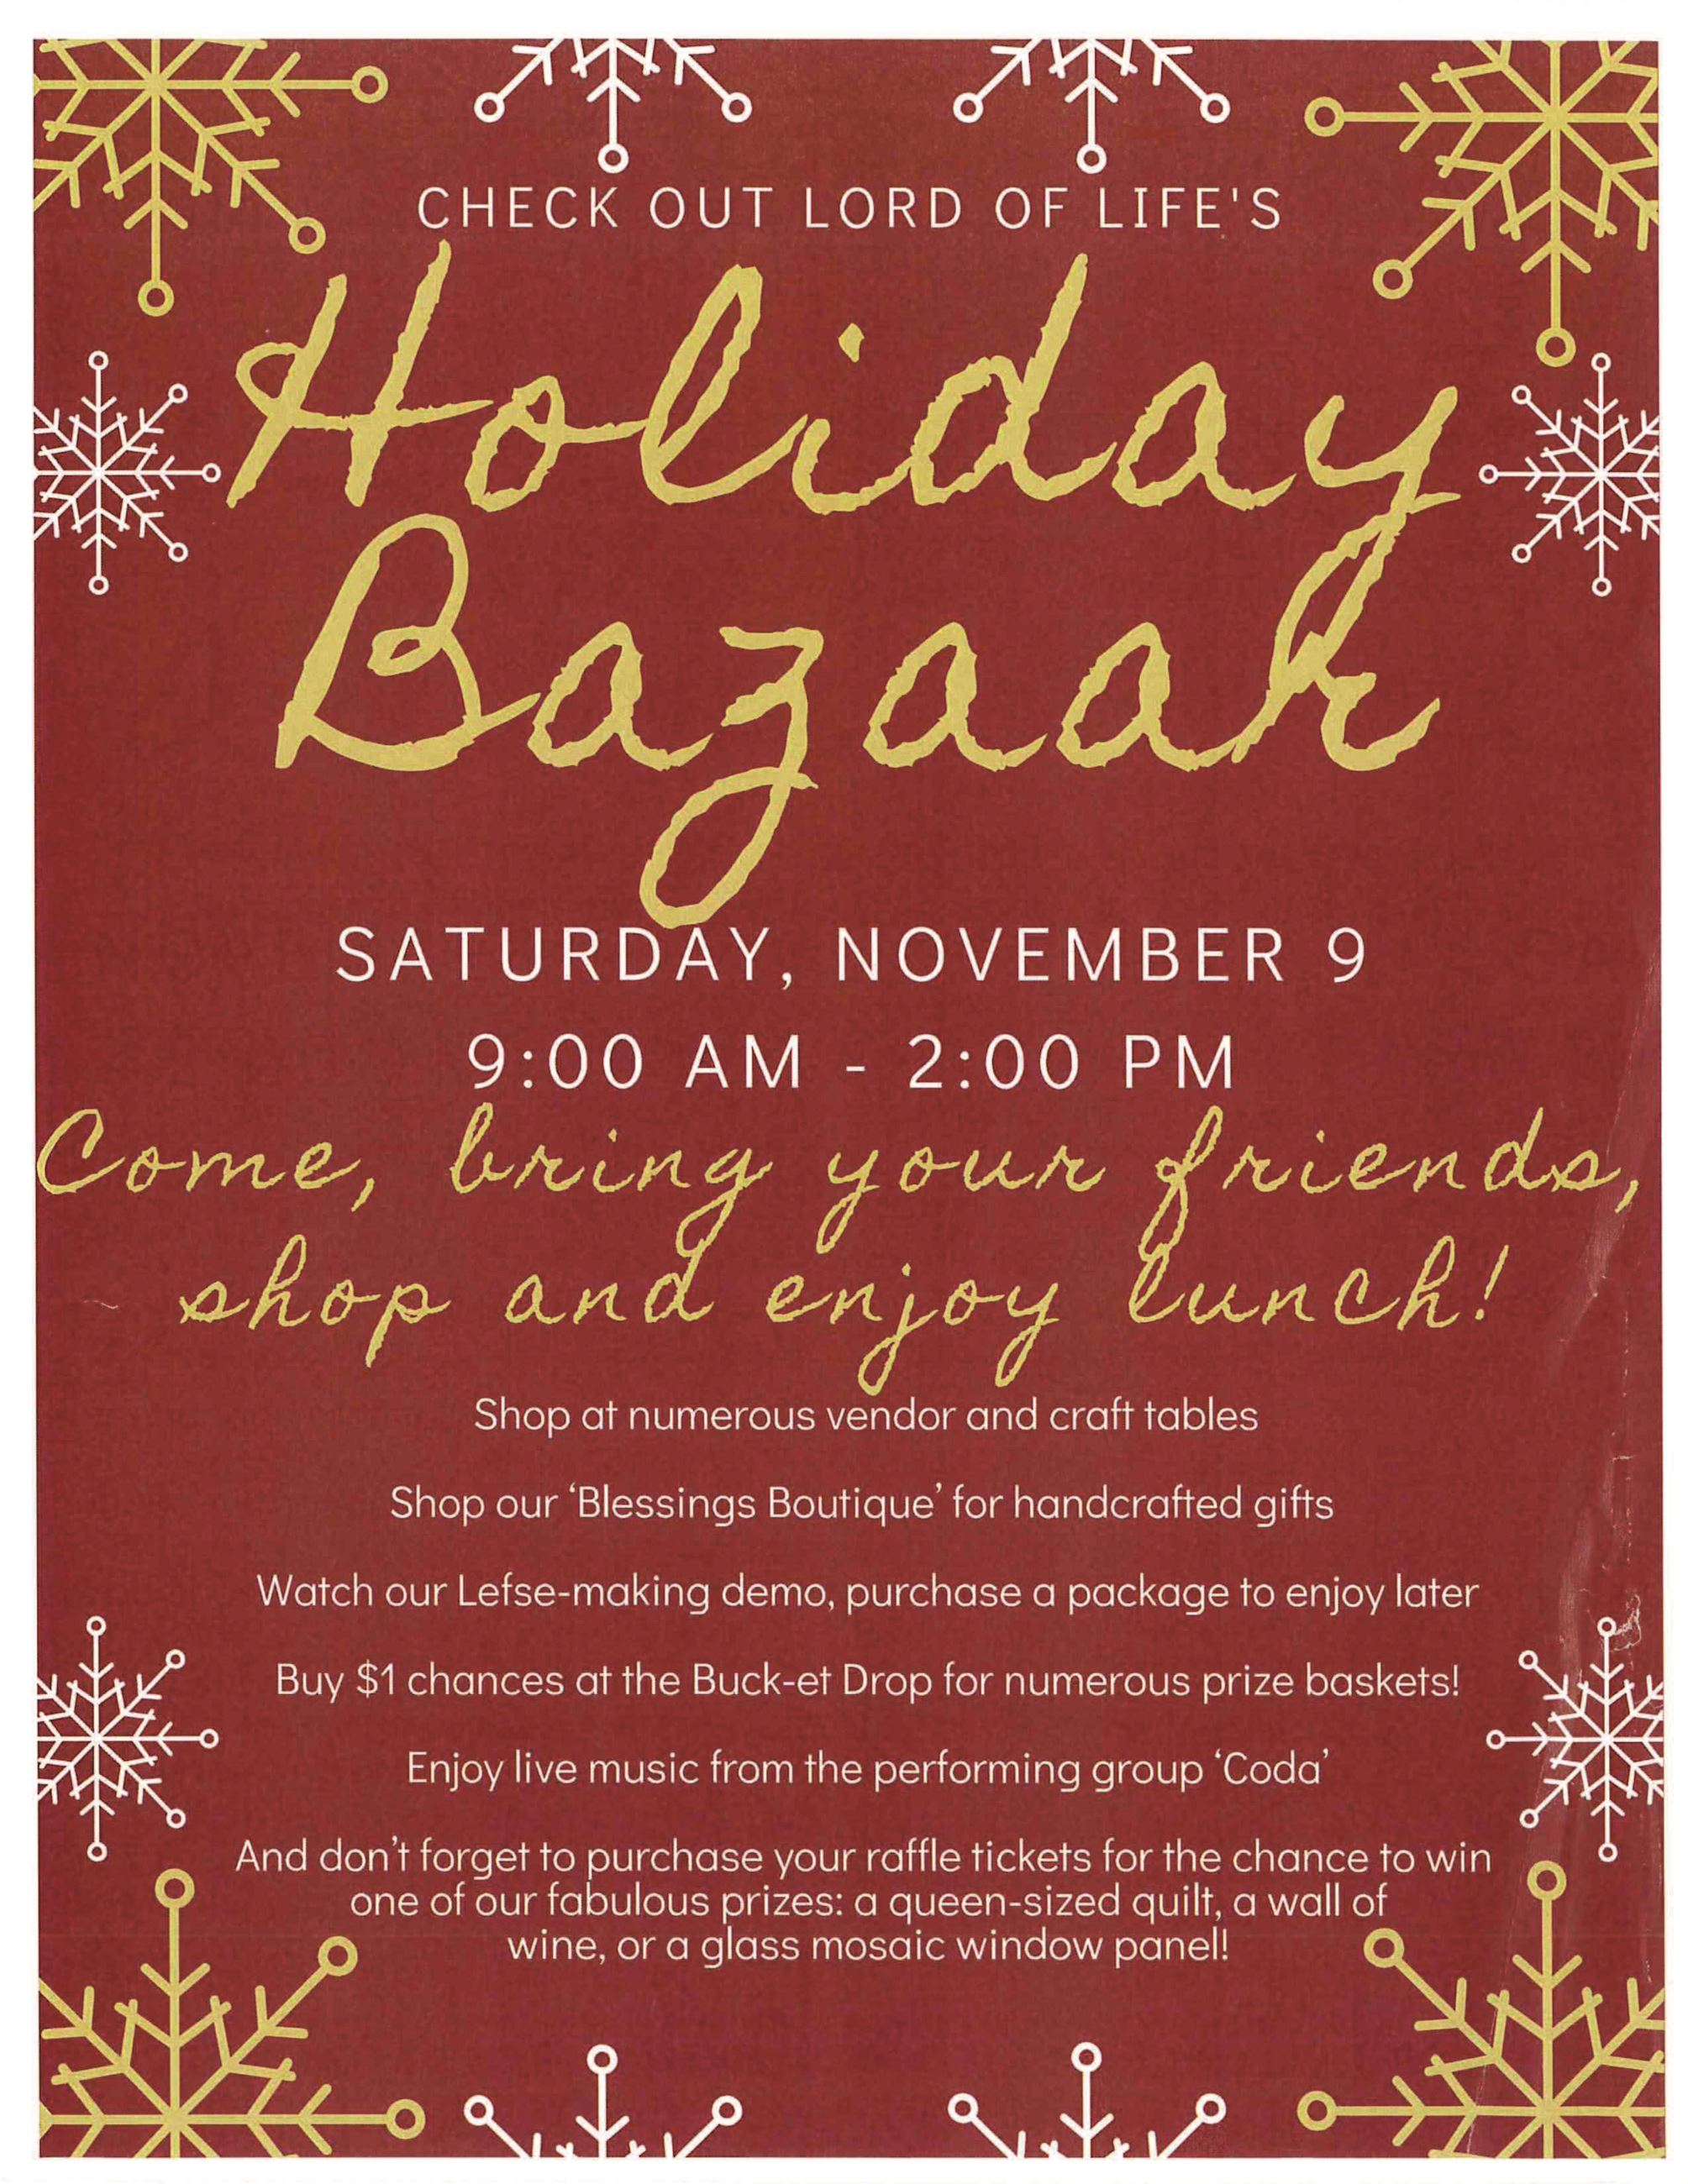 LOL Holiday Bazaar Flyer